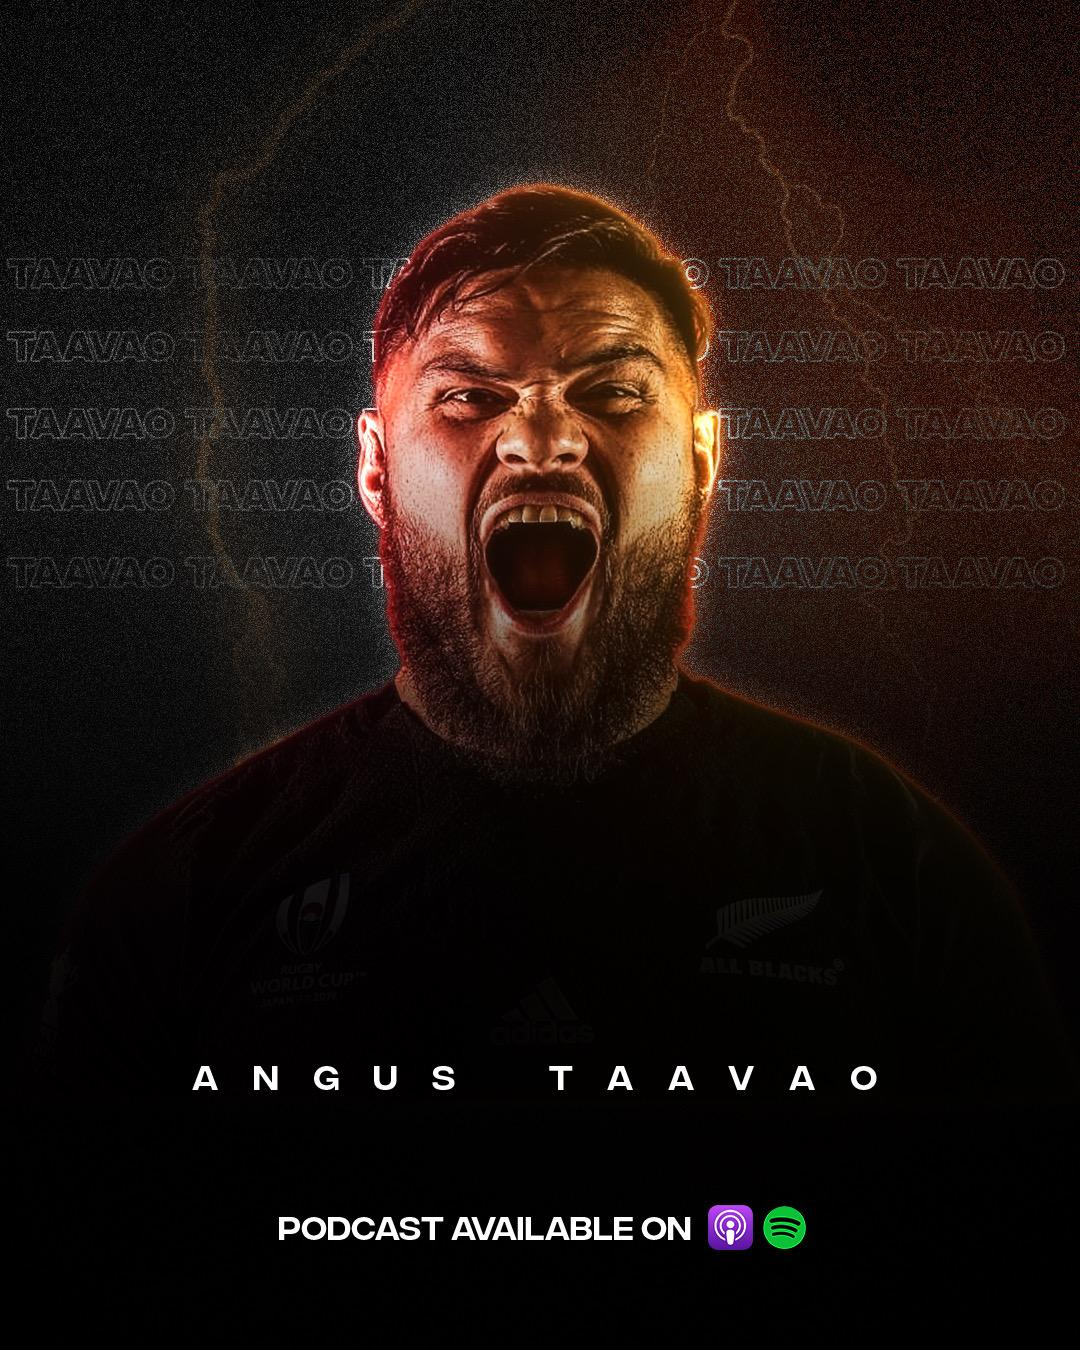 Angus Ta'avao - What a Lad